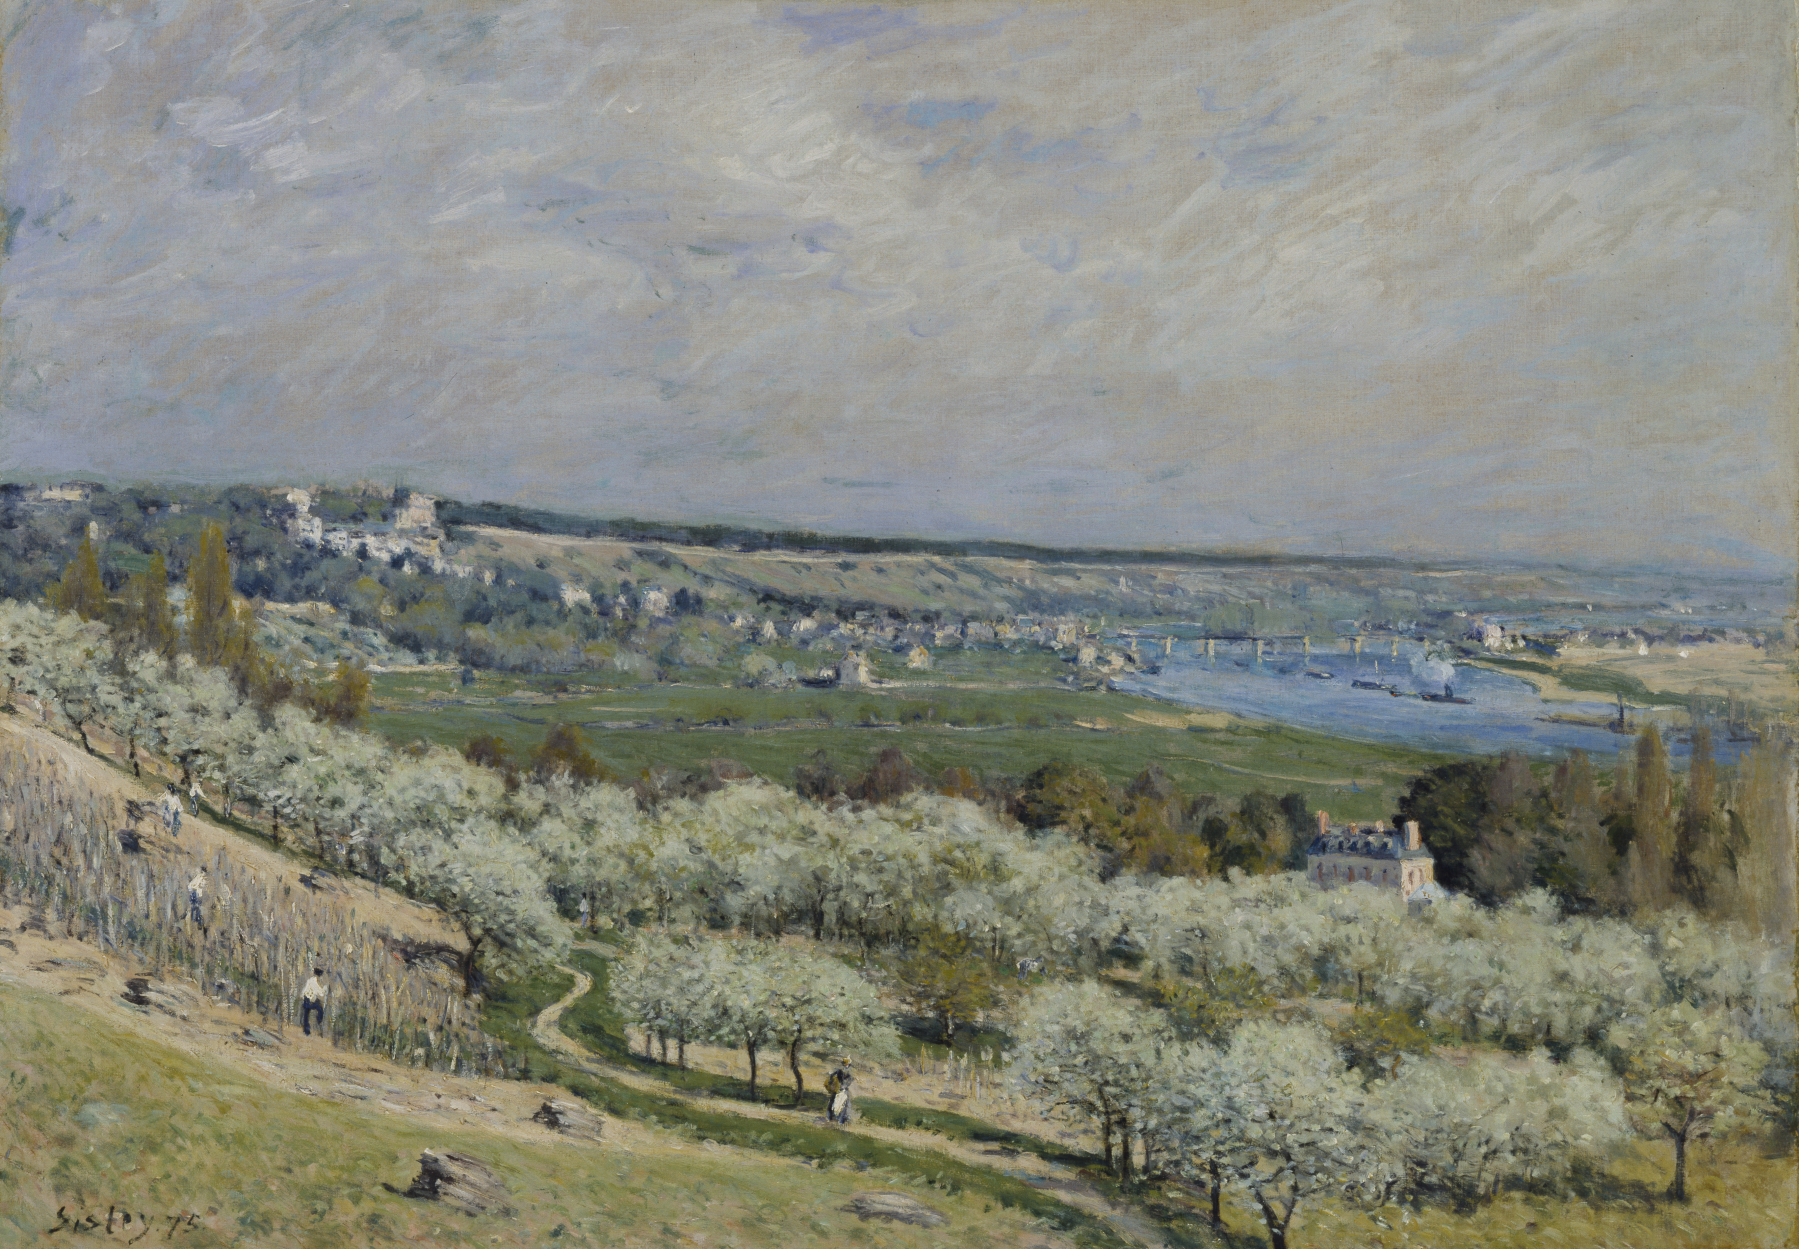 Alfred_Sisley_-_The_Terrace_at_Saint-Germain,_Spring_-_Walters_37992